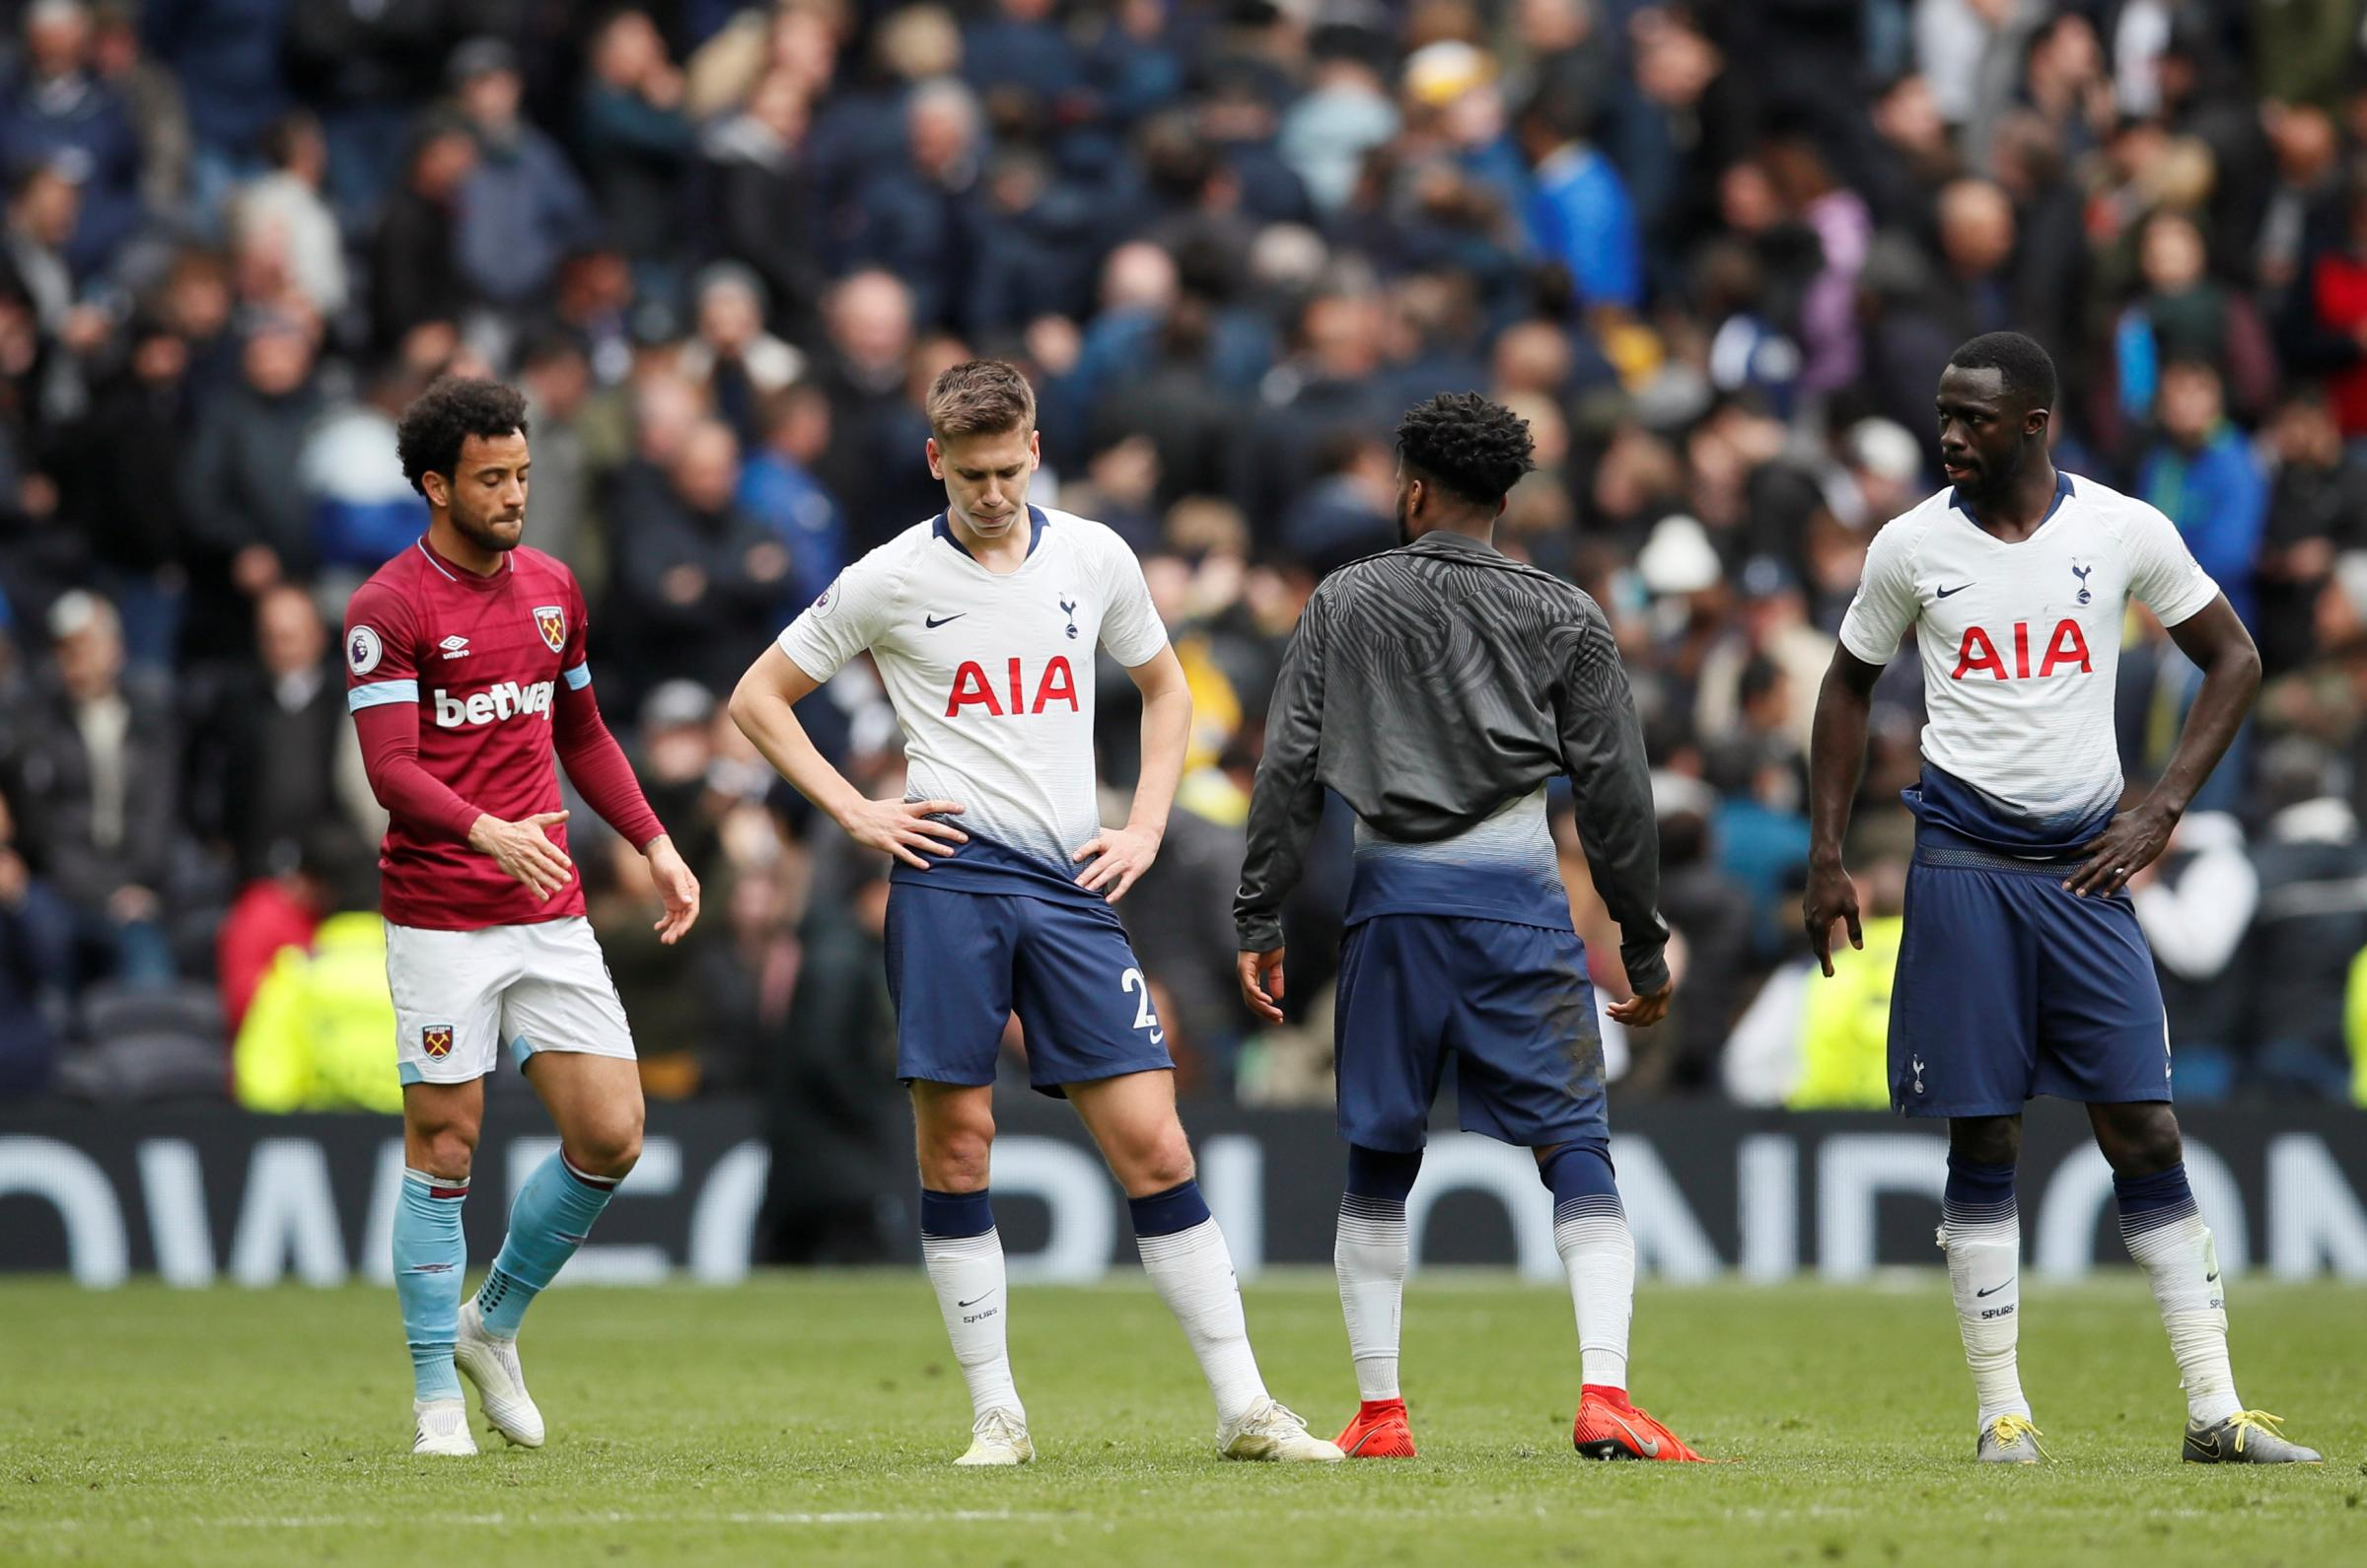 A dejected Juan Foyth and Davinson Sanchez at full-time. Picture: Action Images